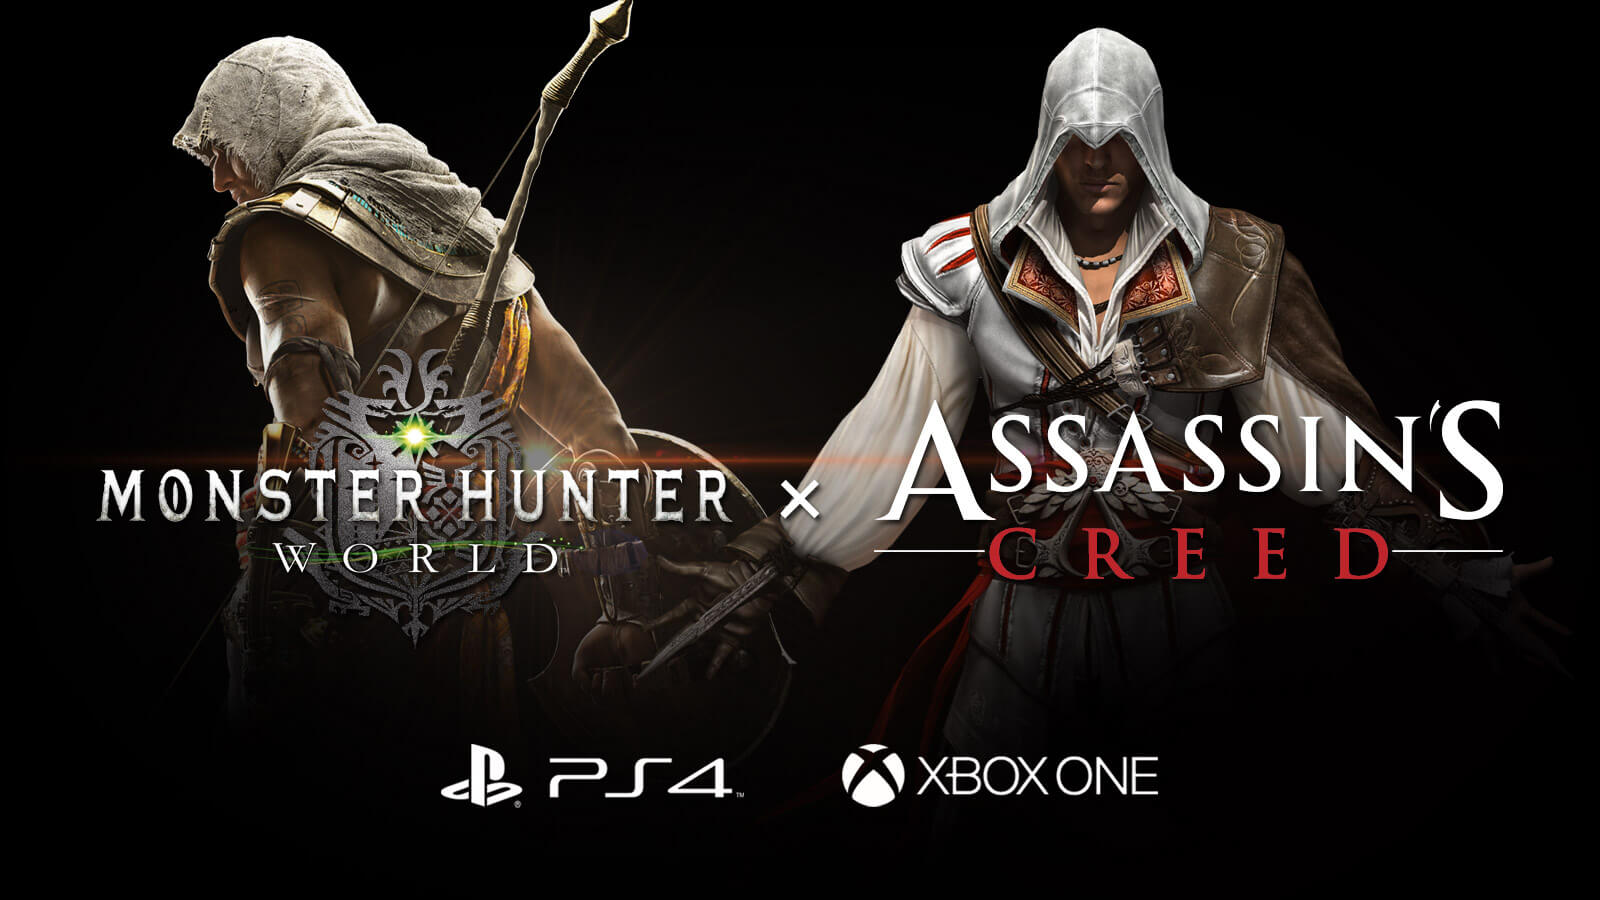 Monster Hunter: World X Assassin's Creed Collaboration Event